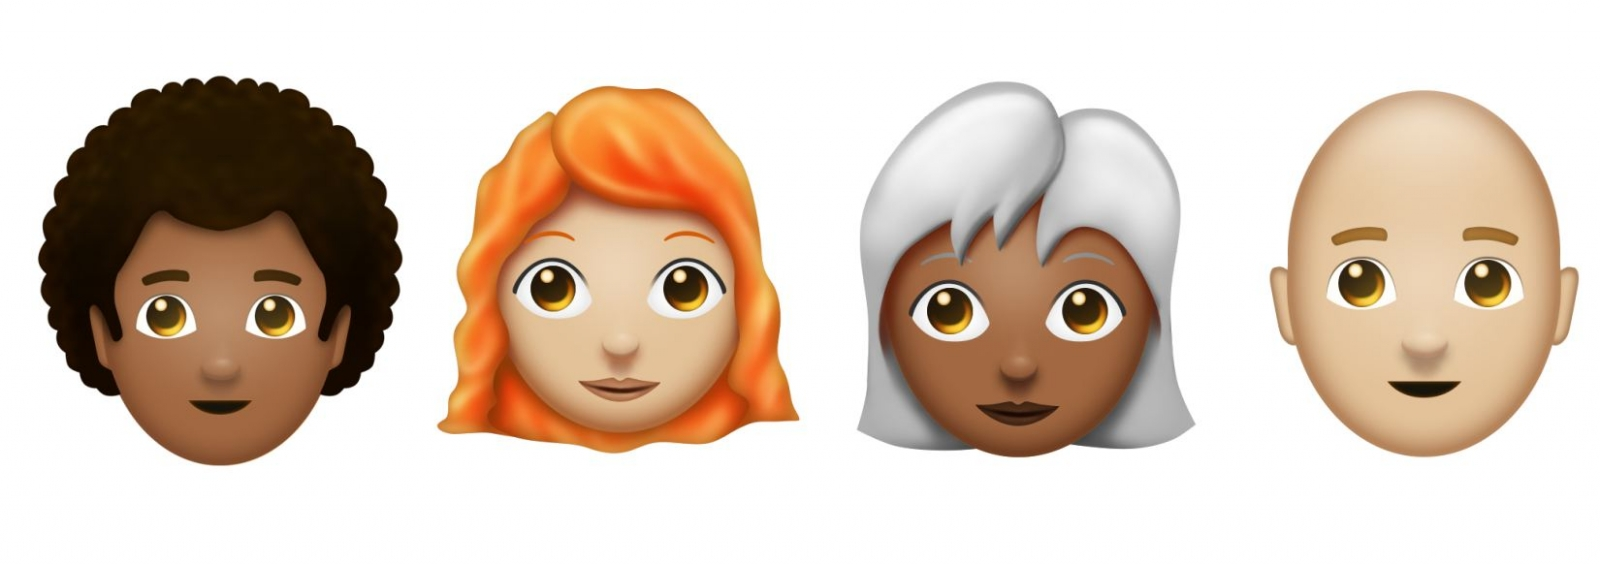 redheads rejoice as ginger emoji could be coming to